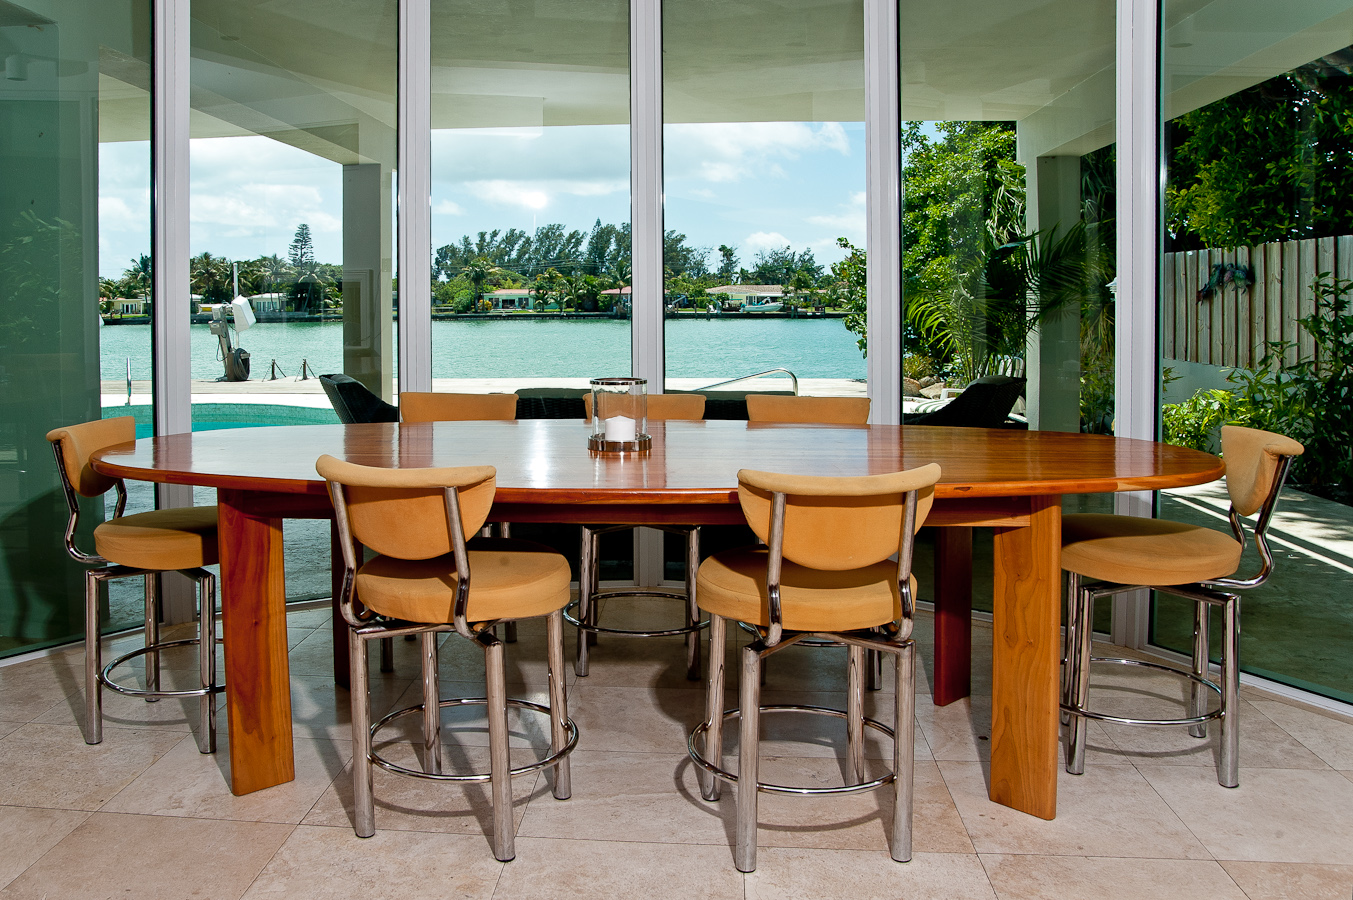 7 Bedroom Miami Beach Ceo Mansion Jpl Vacation Rentals